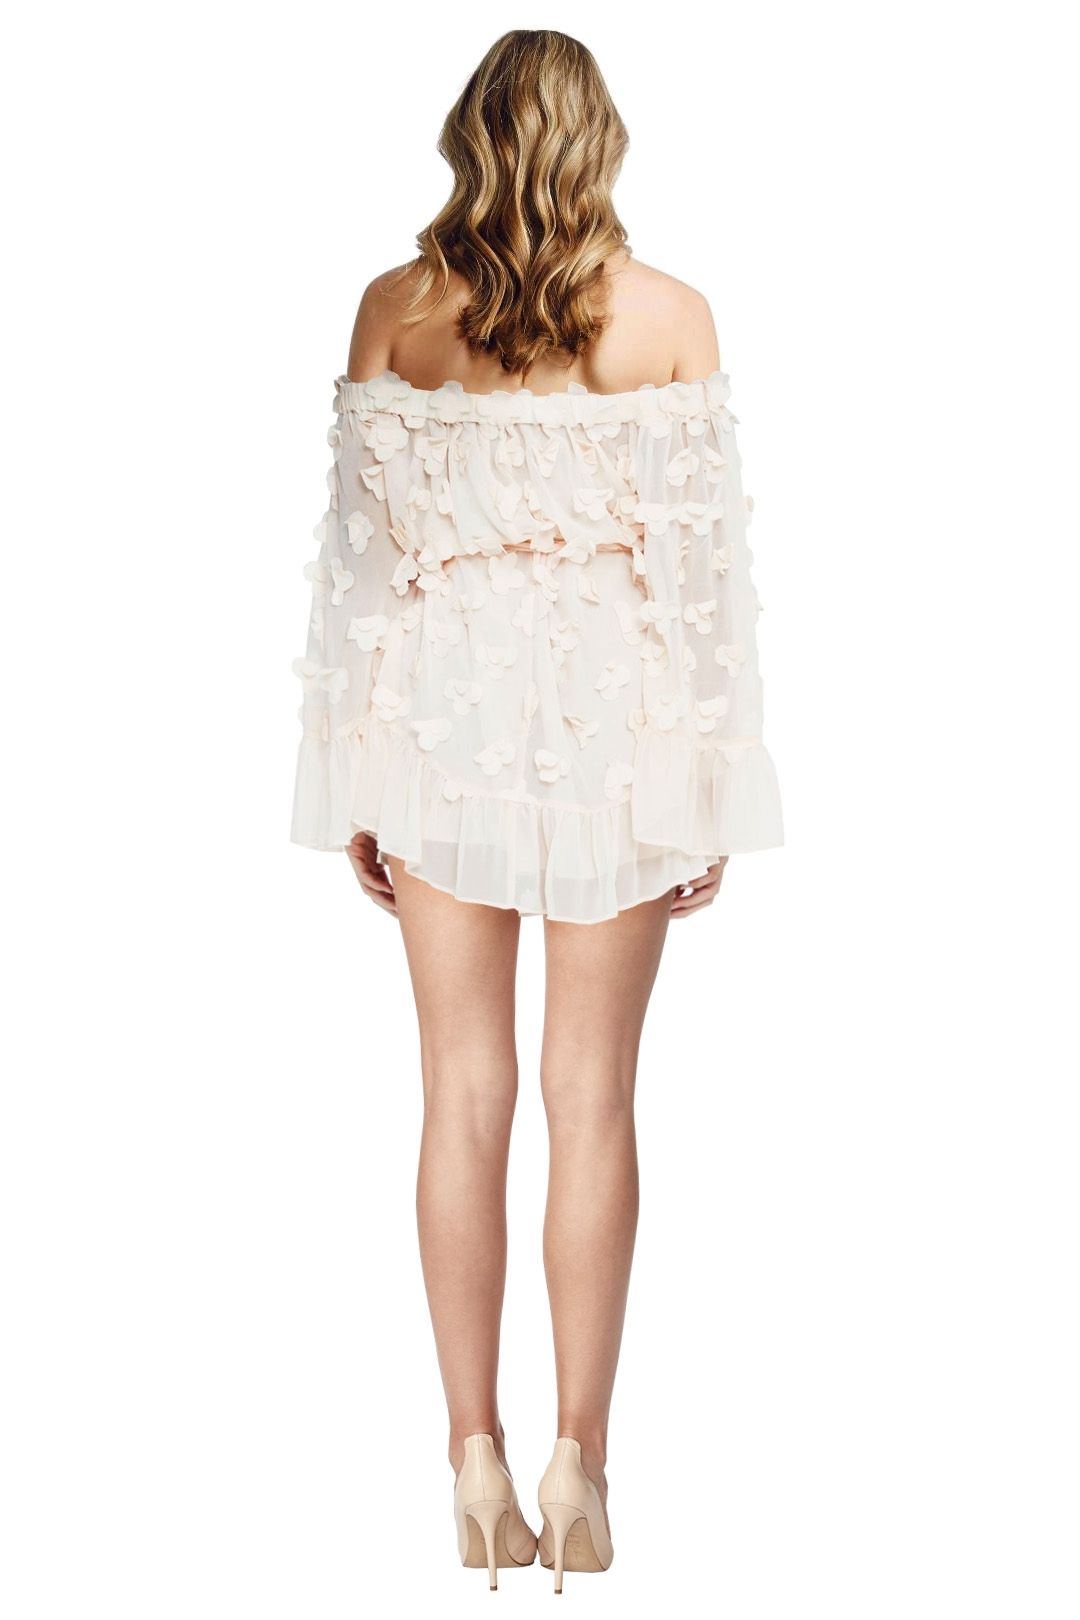 Alice McCall - Pastime Paradise Playsuit - Shell Pink - Back